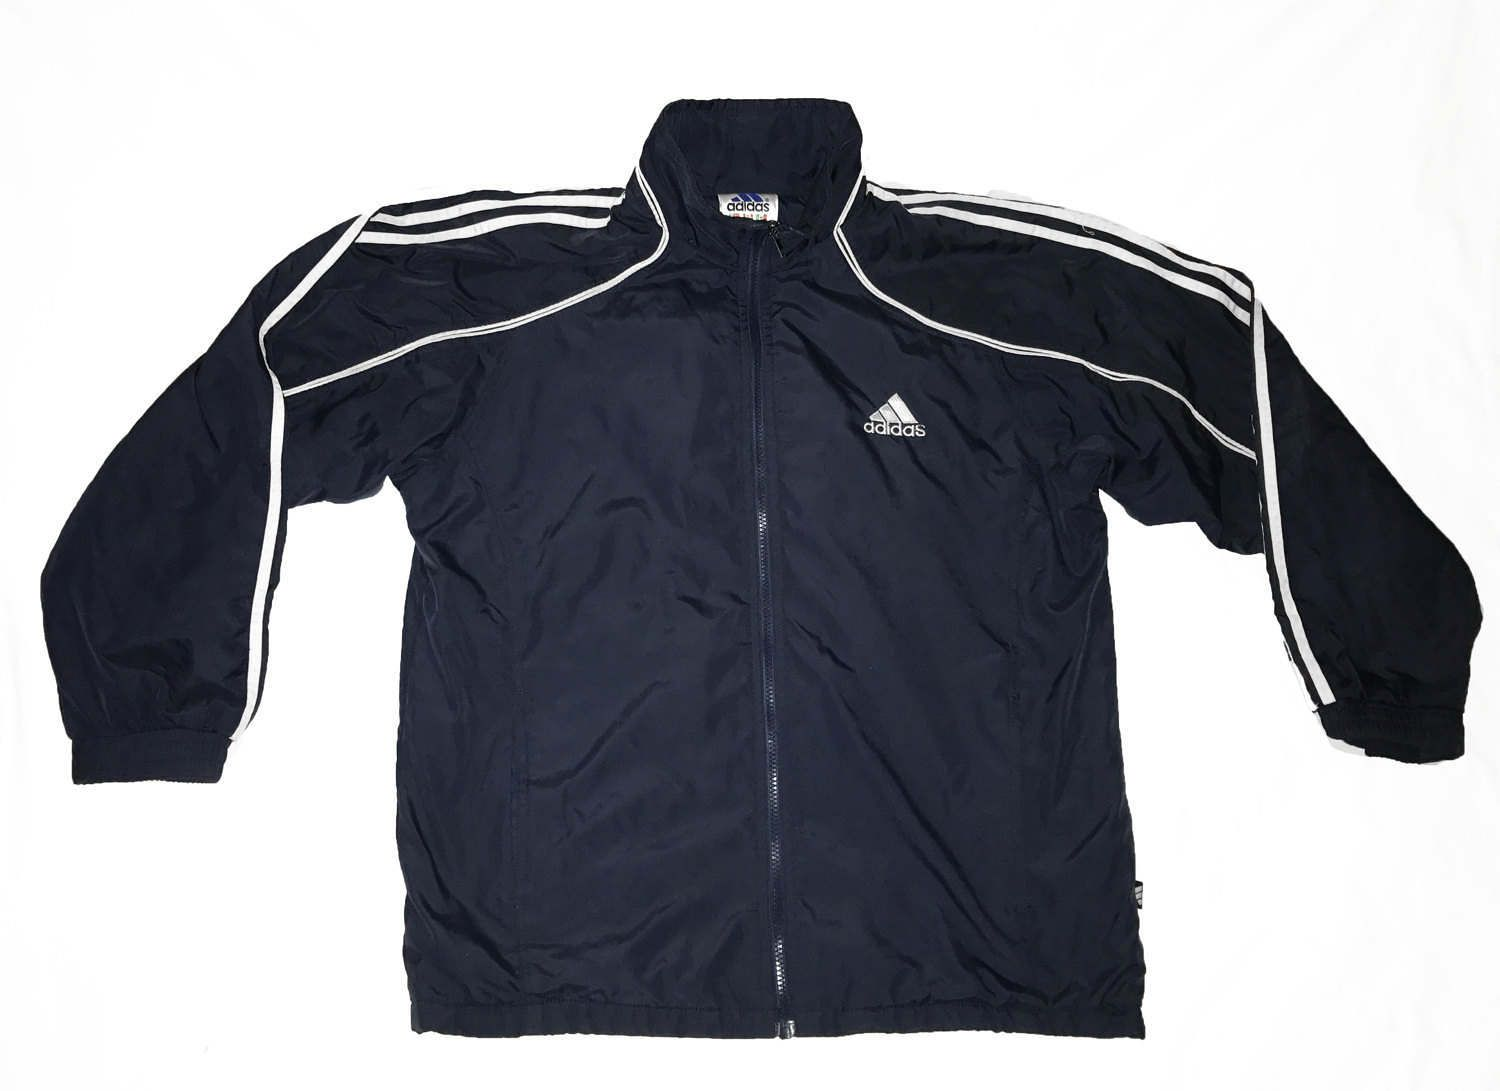 adidas fleece lined jacket